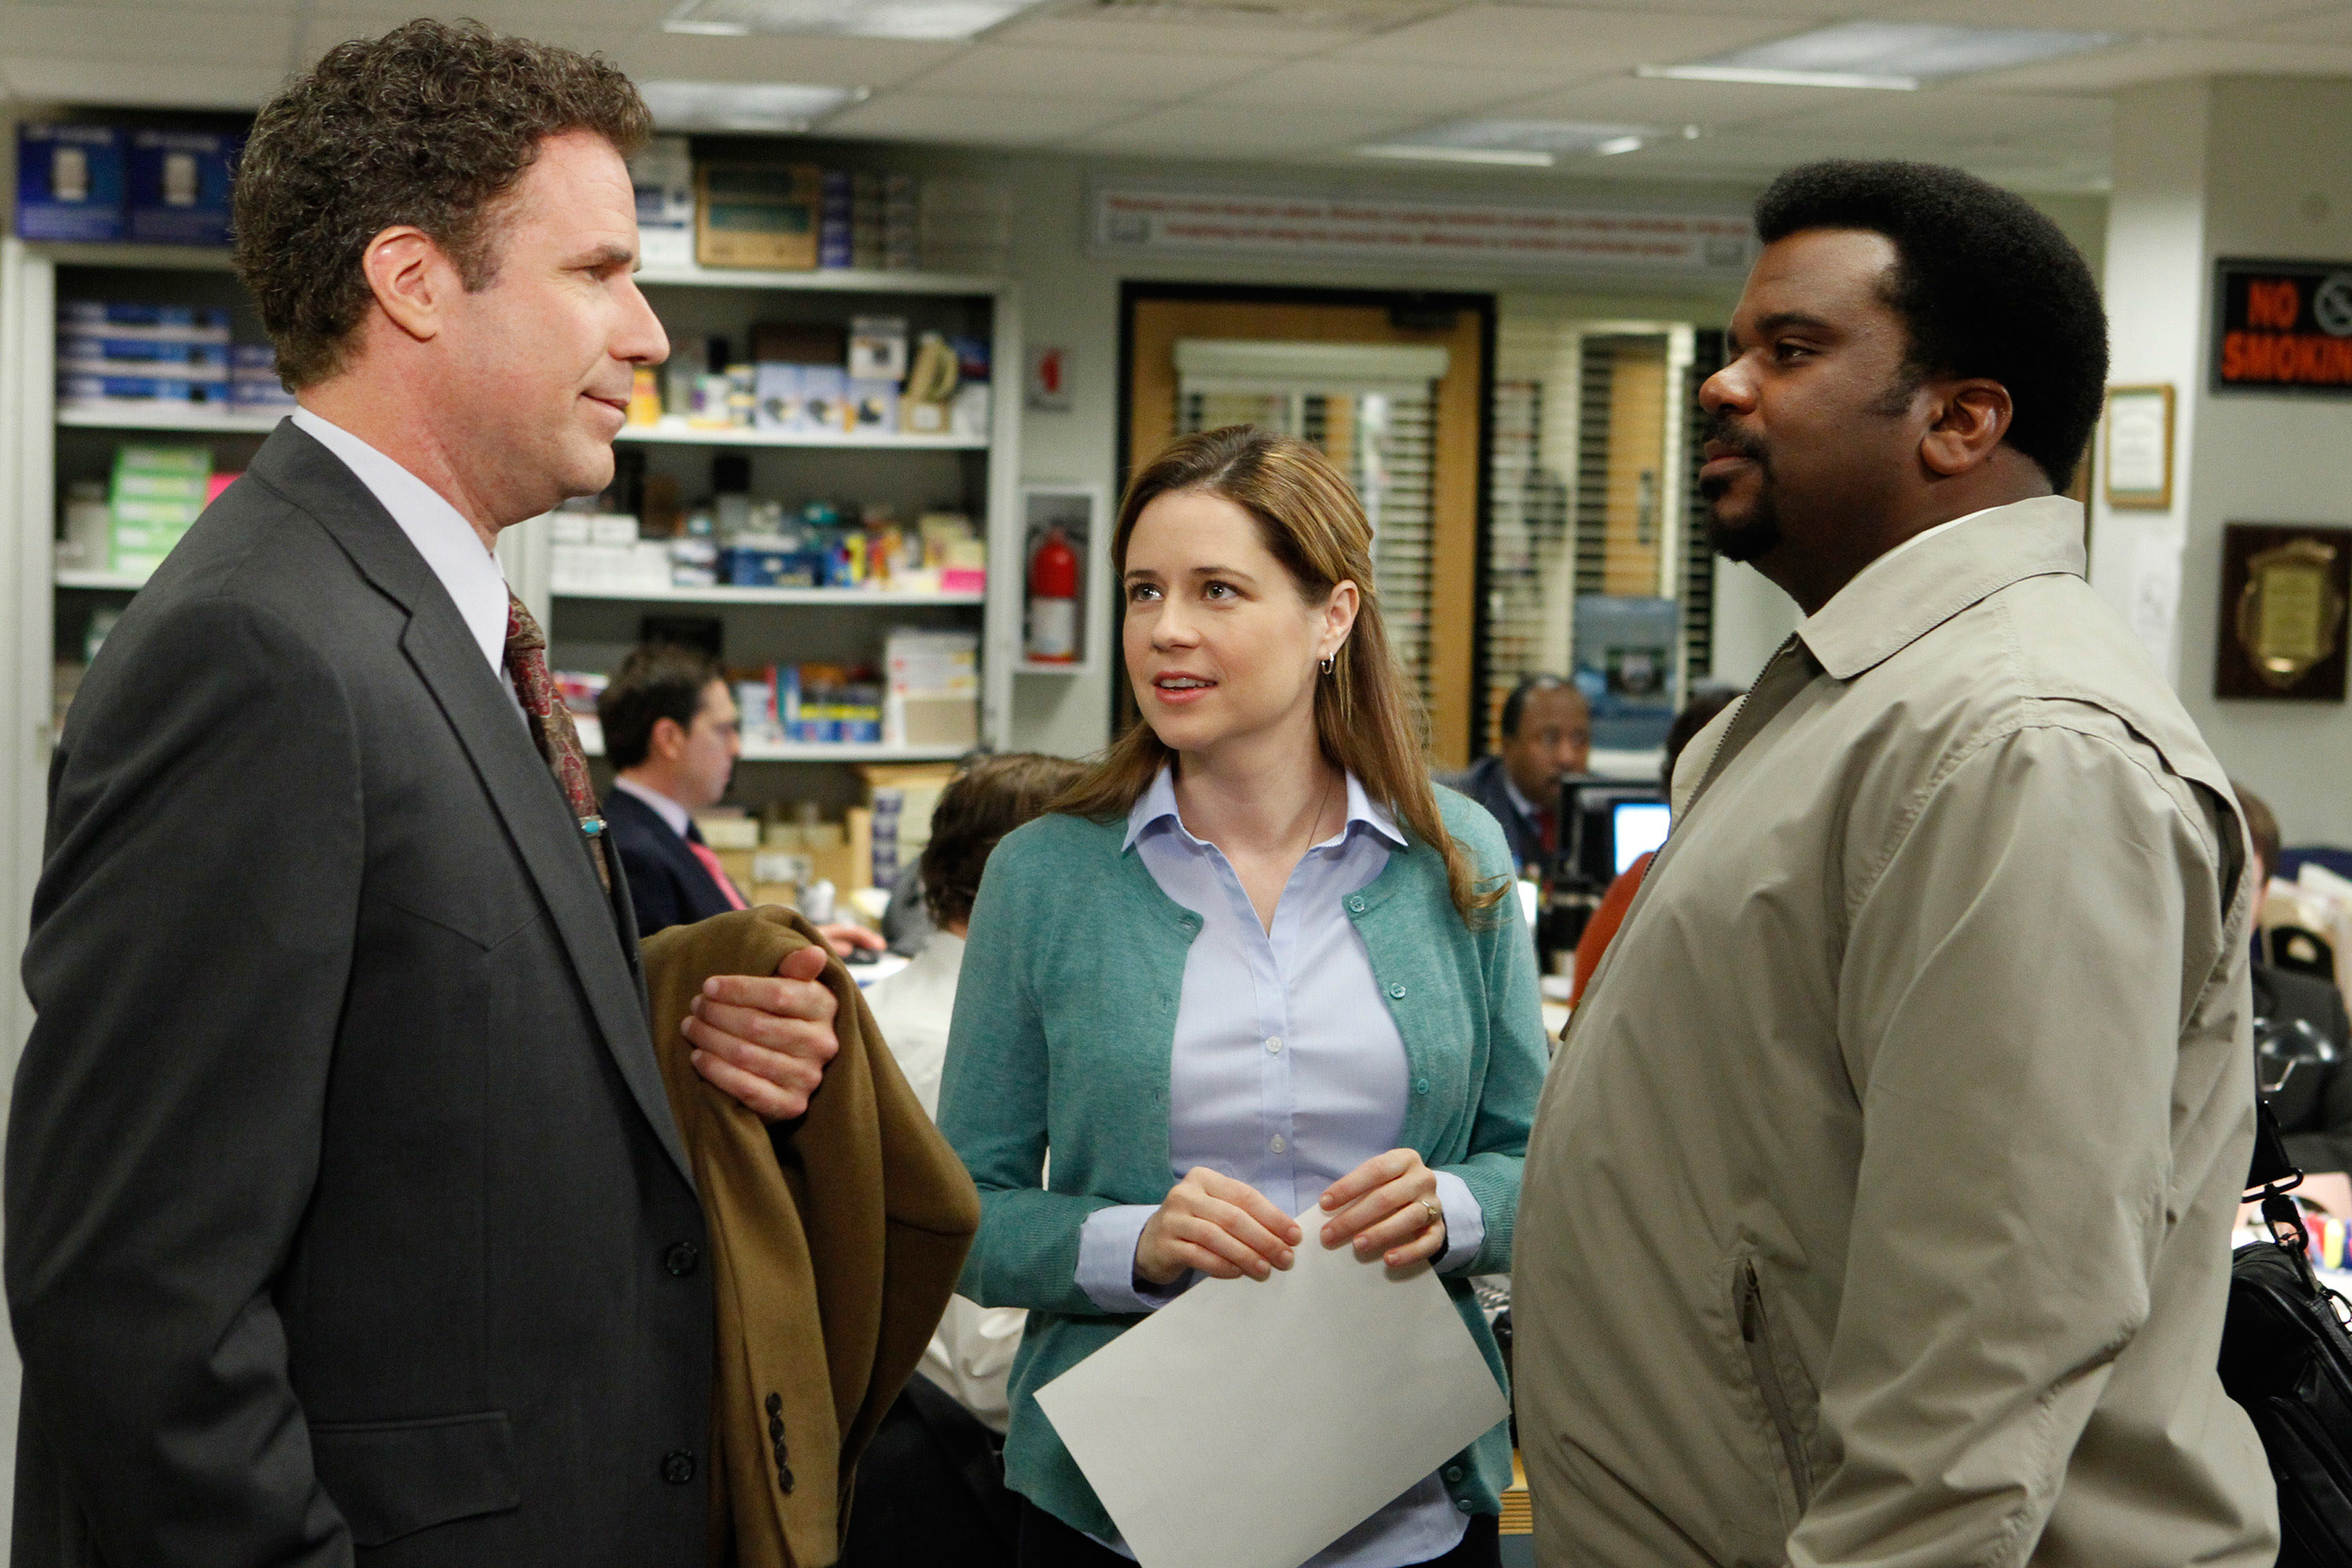 Will Ferrell, Jenna Fischer, and Craig Robinson in The Office